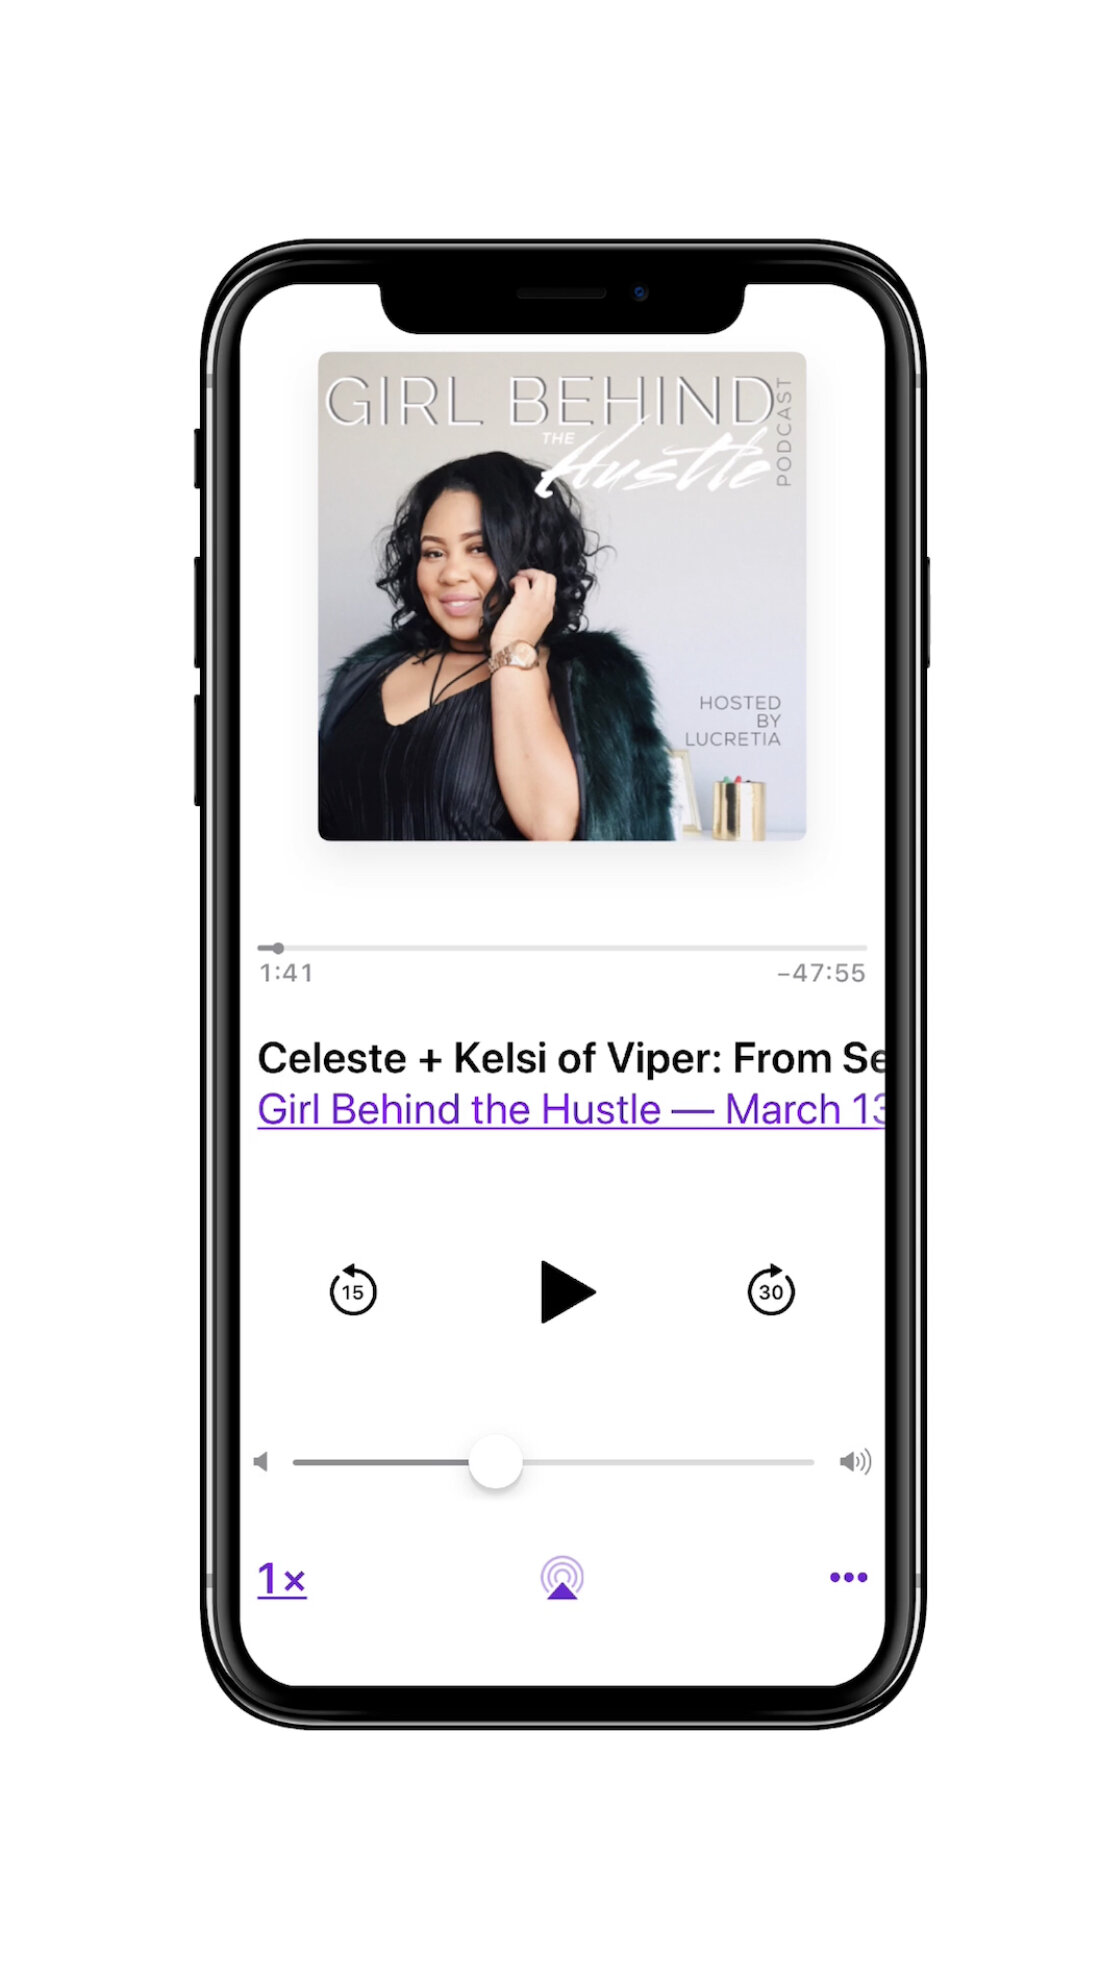 Podcast - Listen in weekly as we sit down with the women behind some of your favorite businesses to discuss self-care, wins, losses, mindset and the real deal of what goes on behind the hustle.